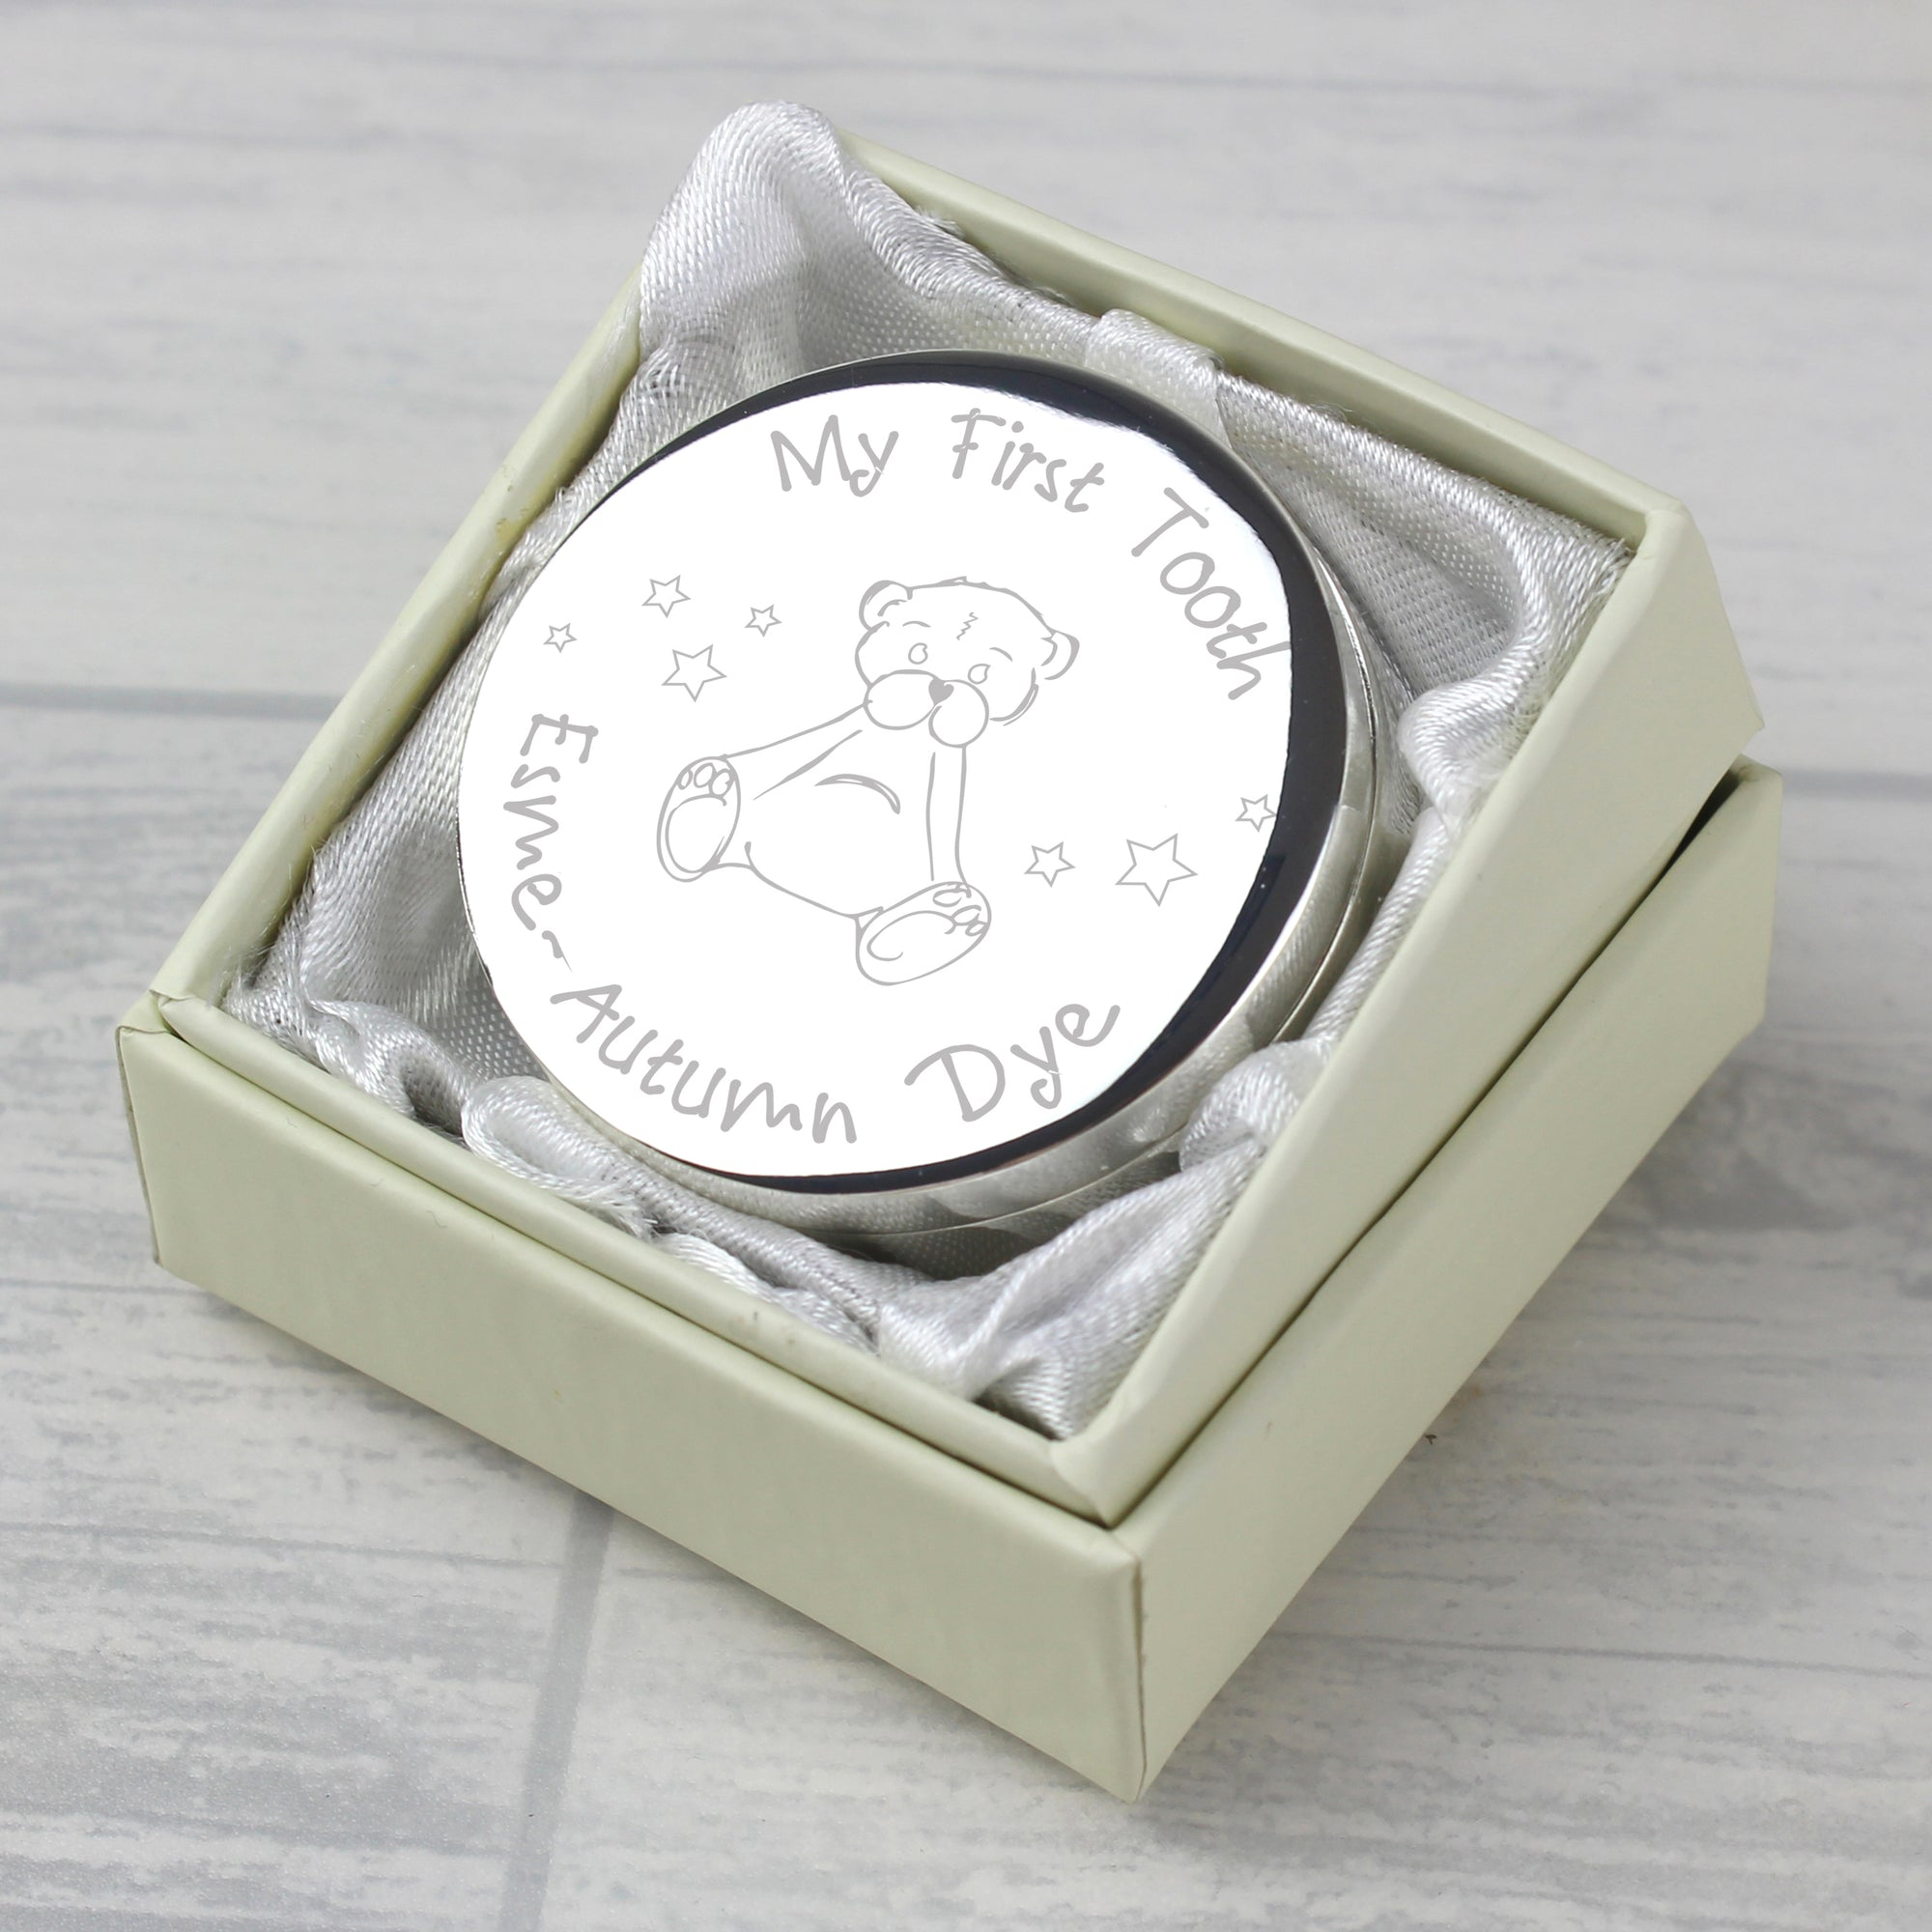 A round silver coloured metal trinket box. The lid of the box has an image of a teddy bear engraved in the centre and above it is the wording 'My First Tooth'. Your own wording of up to 20 characters can be engraved below the teddy, usually a name or a name and date. The trinket box comes in a small presentation box.